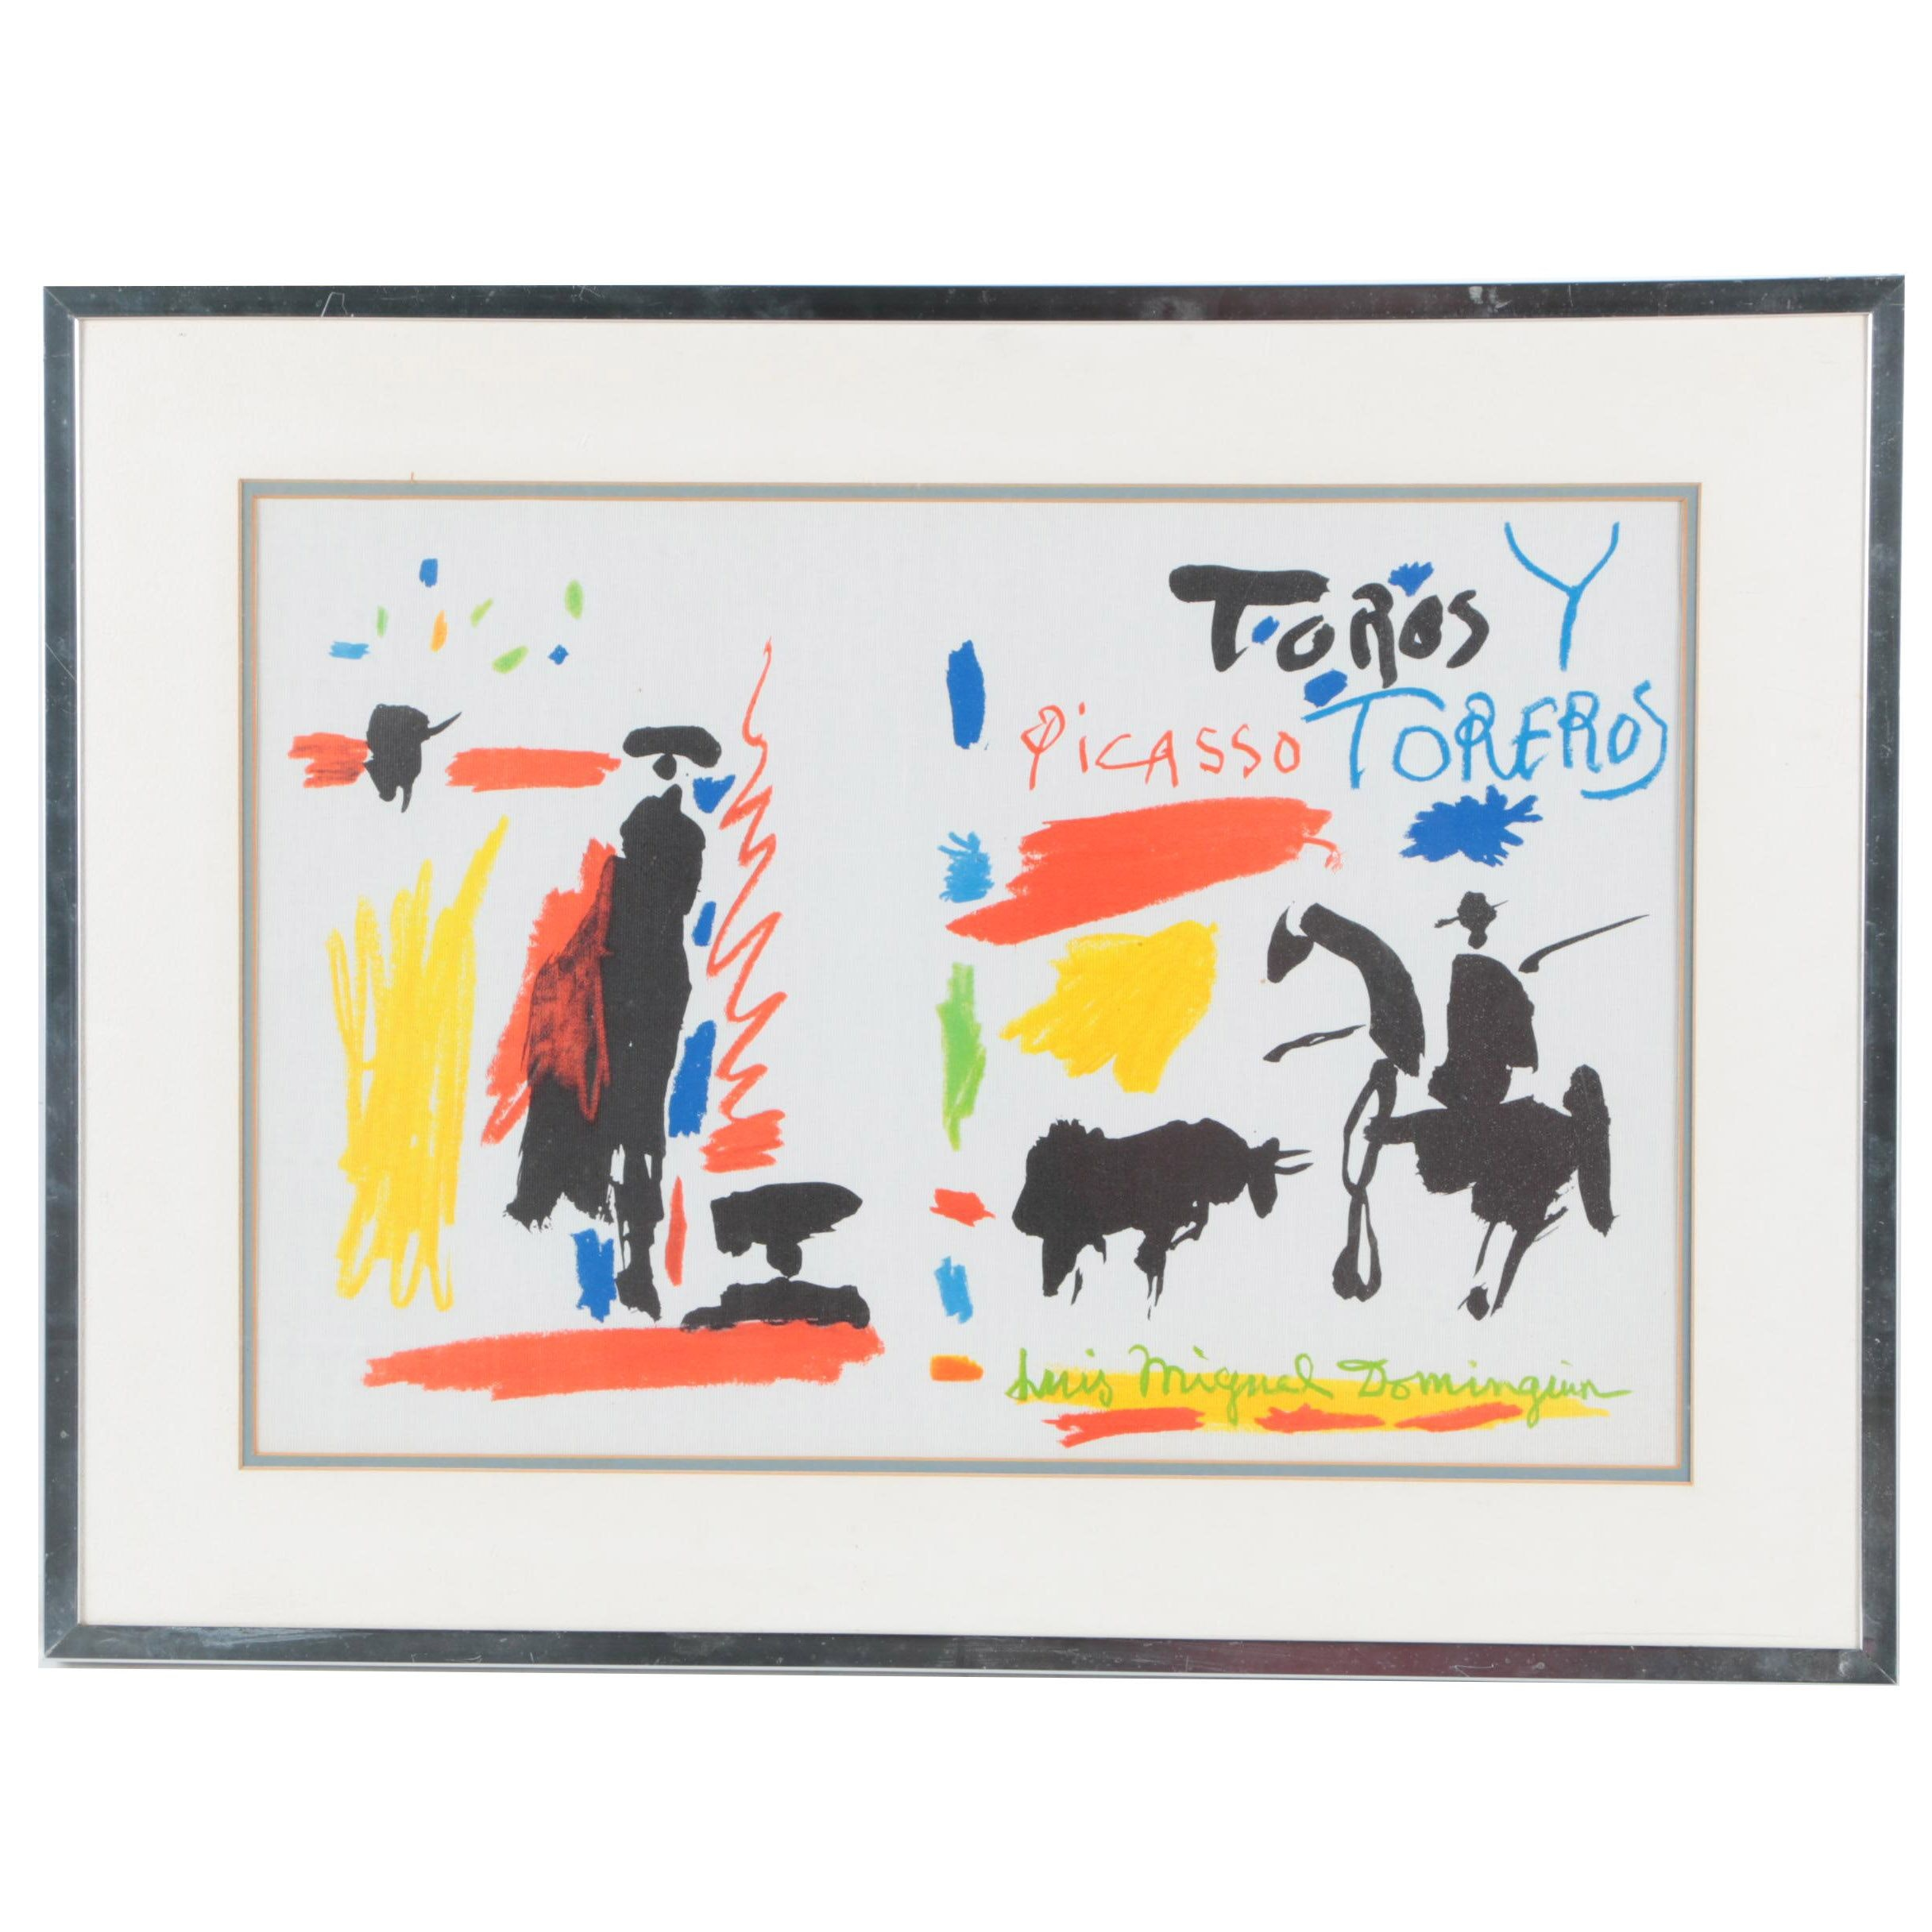 """Offset Lithograph on Canvas After Pablo Picasso from """"Toros y Toreros"""" Folio"""